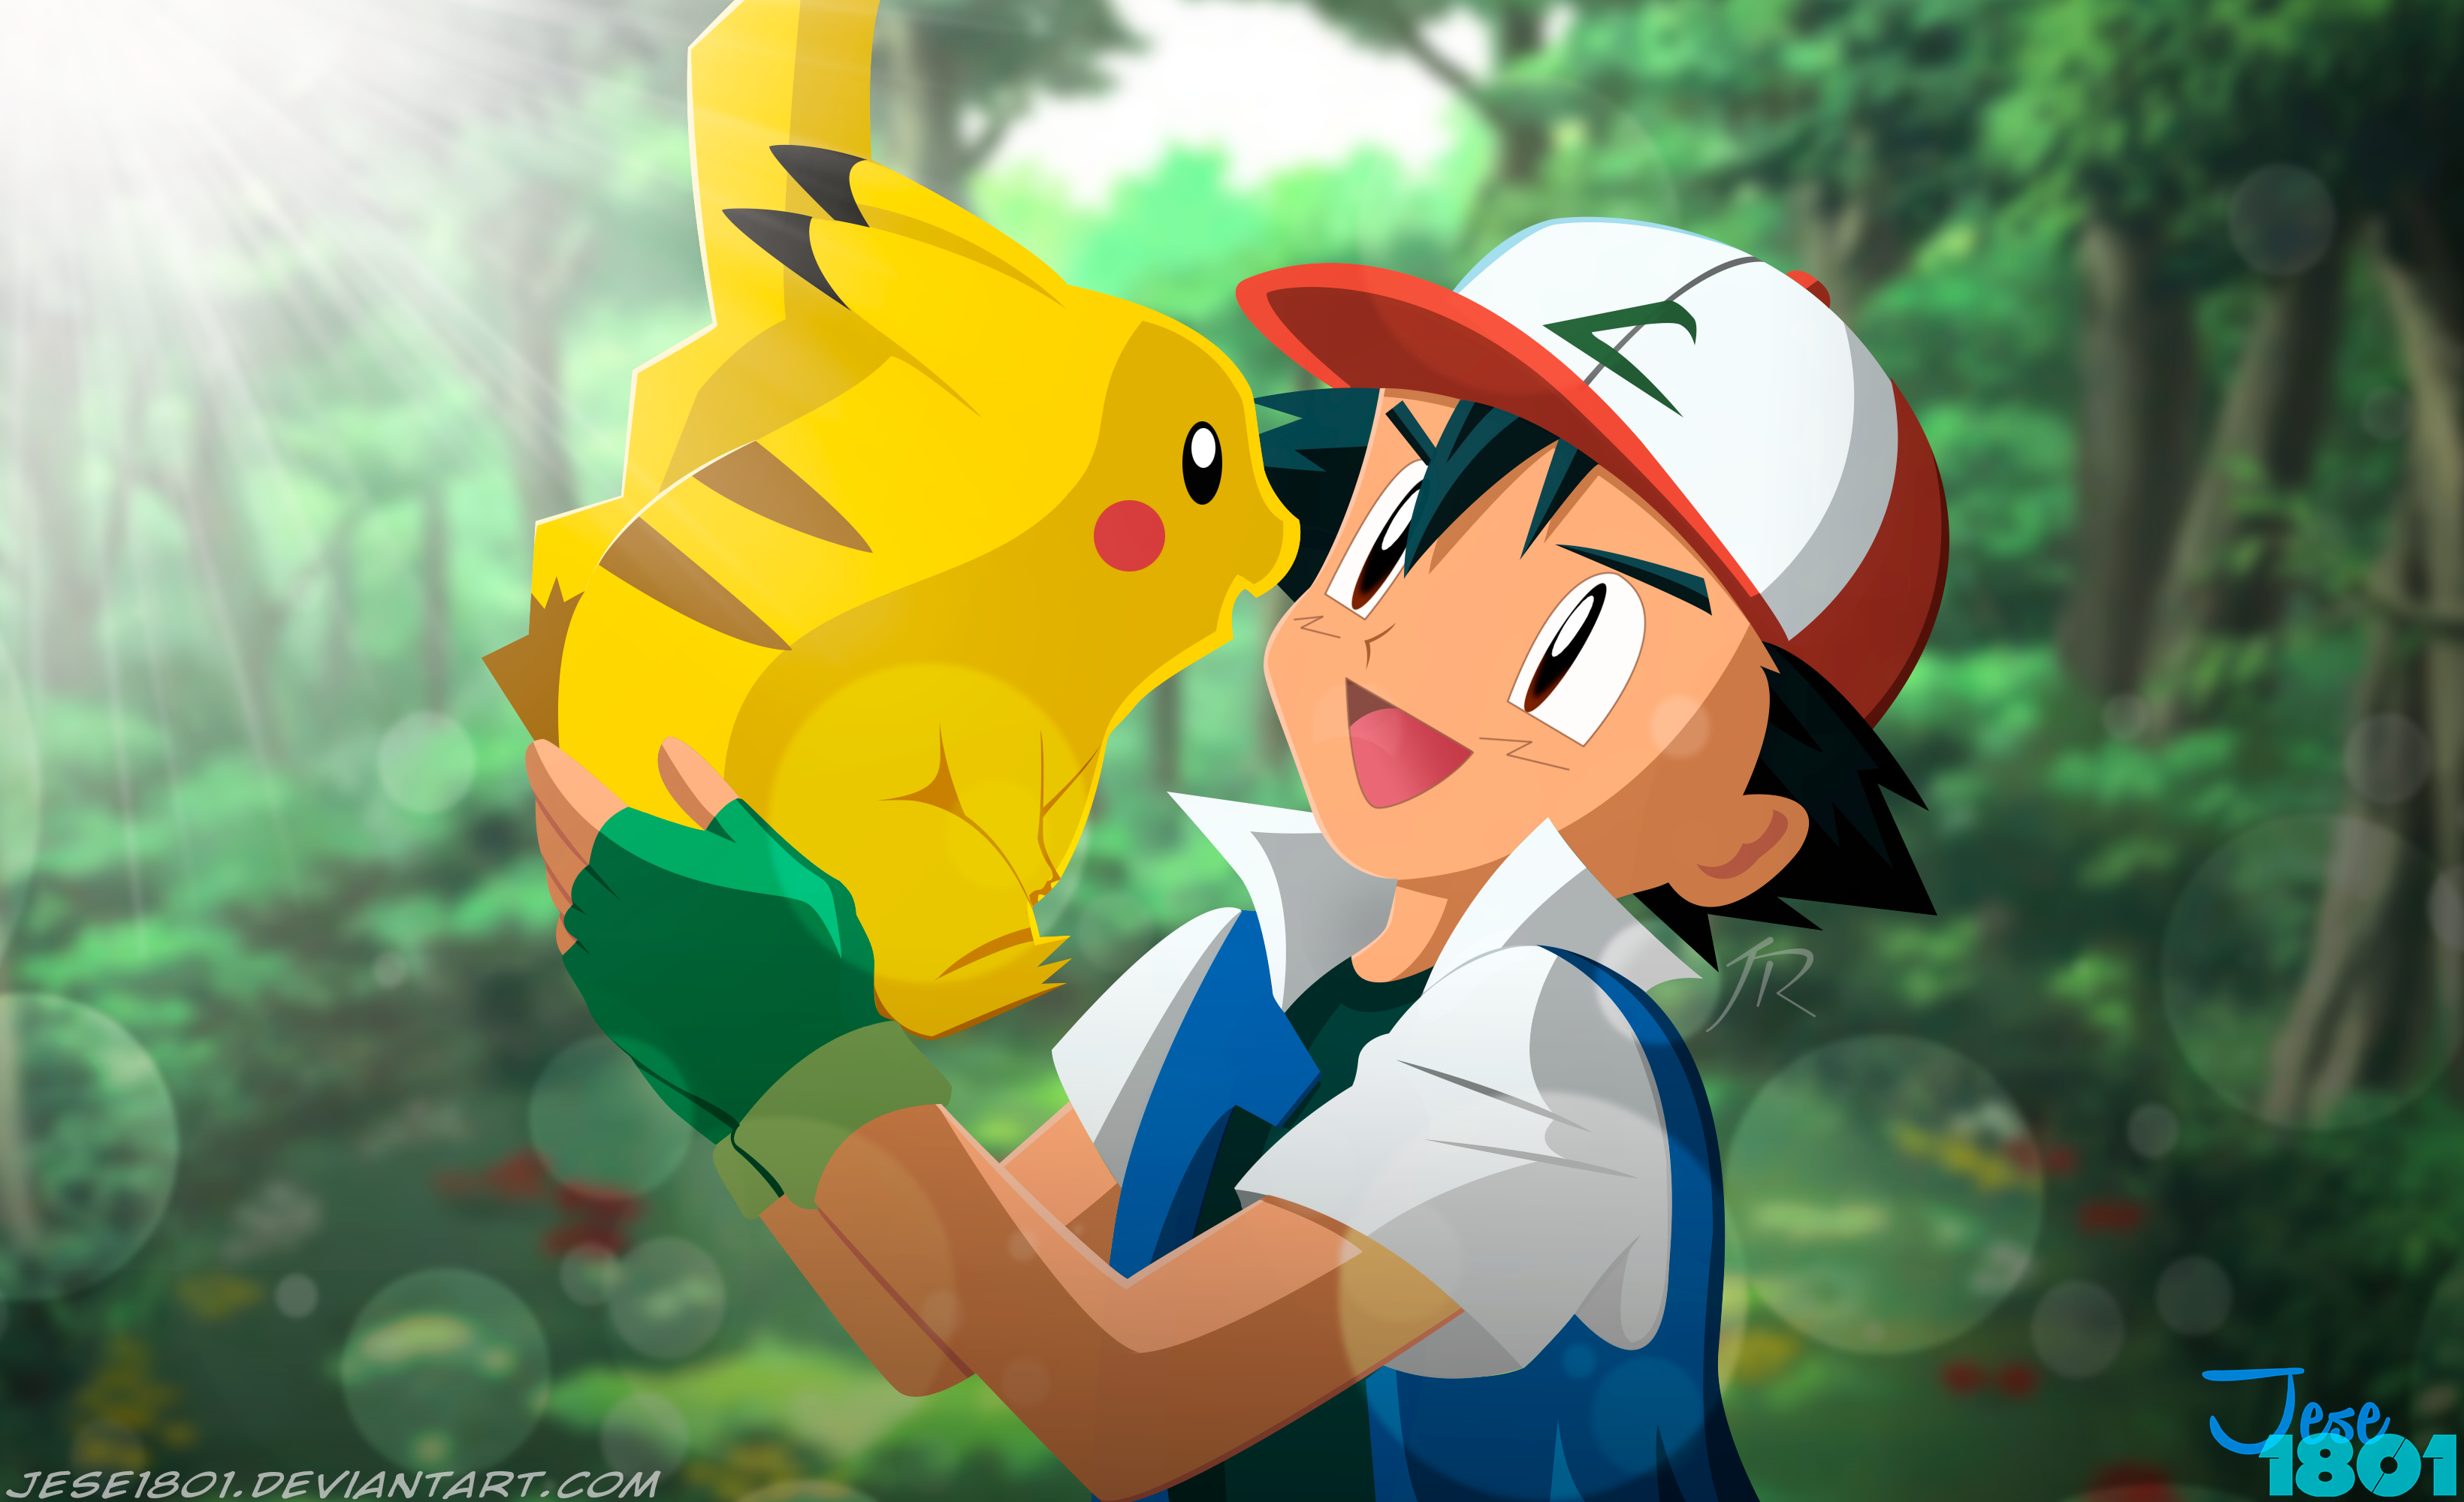 Pokemon ash and pikachu by jese1801 on deviantart - Ash and pikachu wallpaper ...